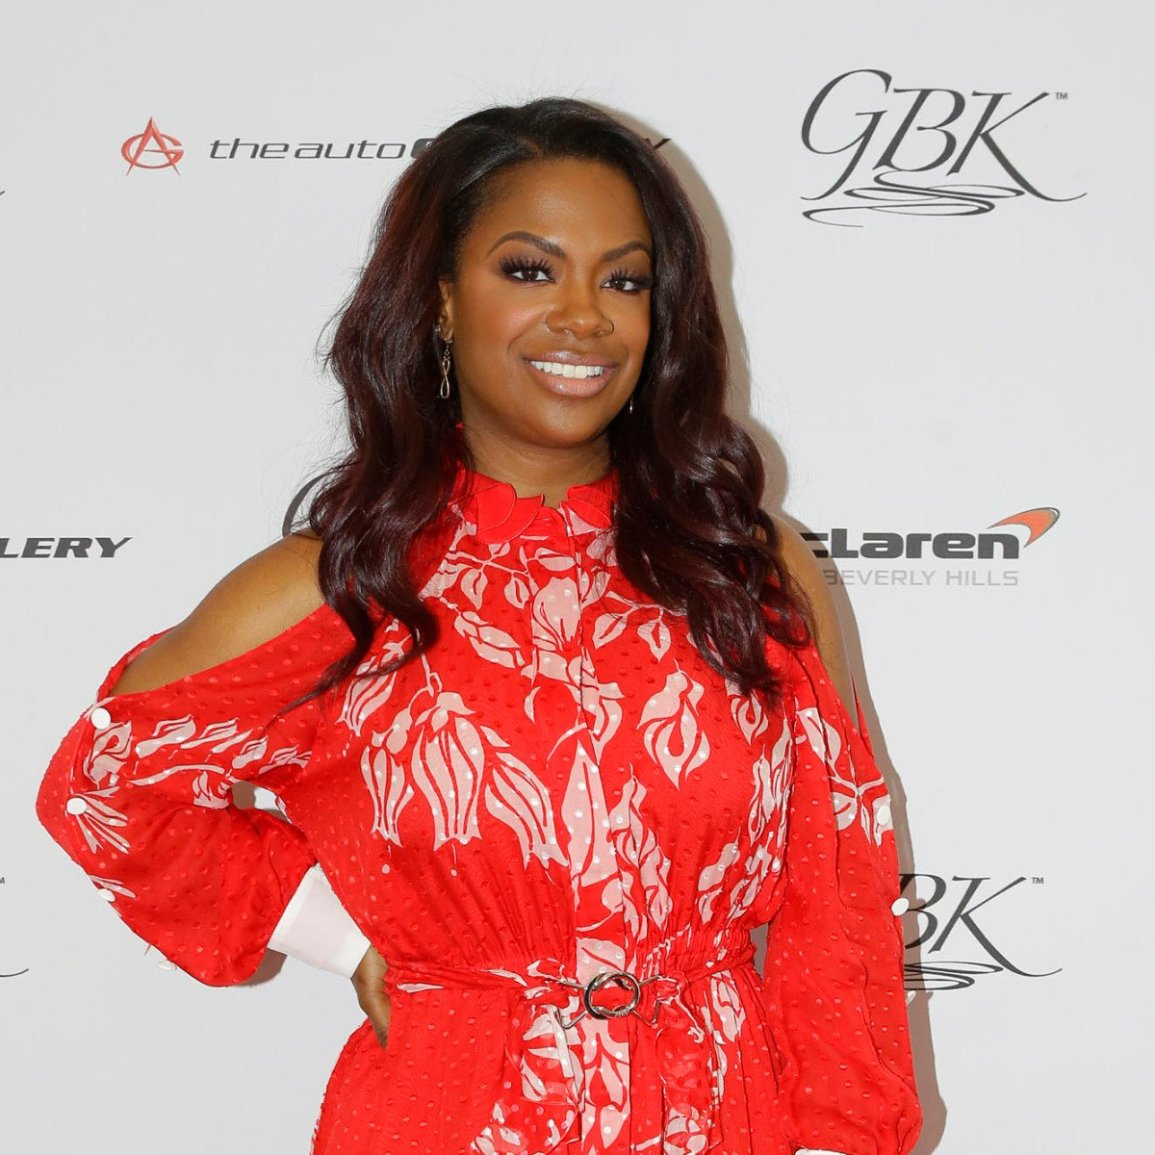 Kandi Burruss Is Excited To Go Back To Atlanta With Her Crew For The Dungeon Tour